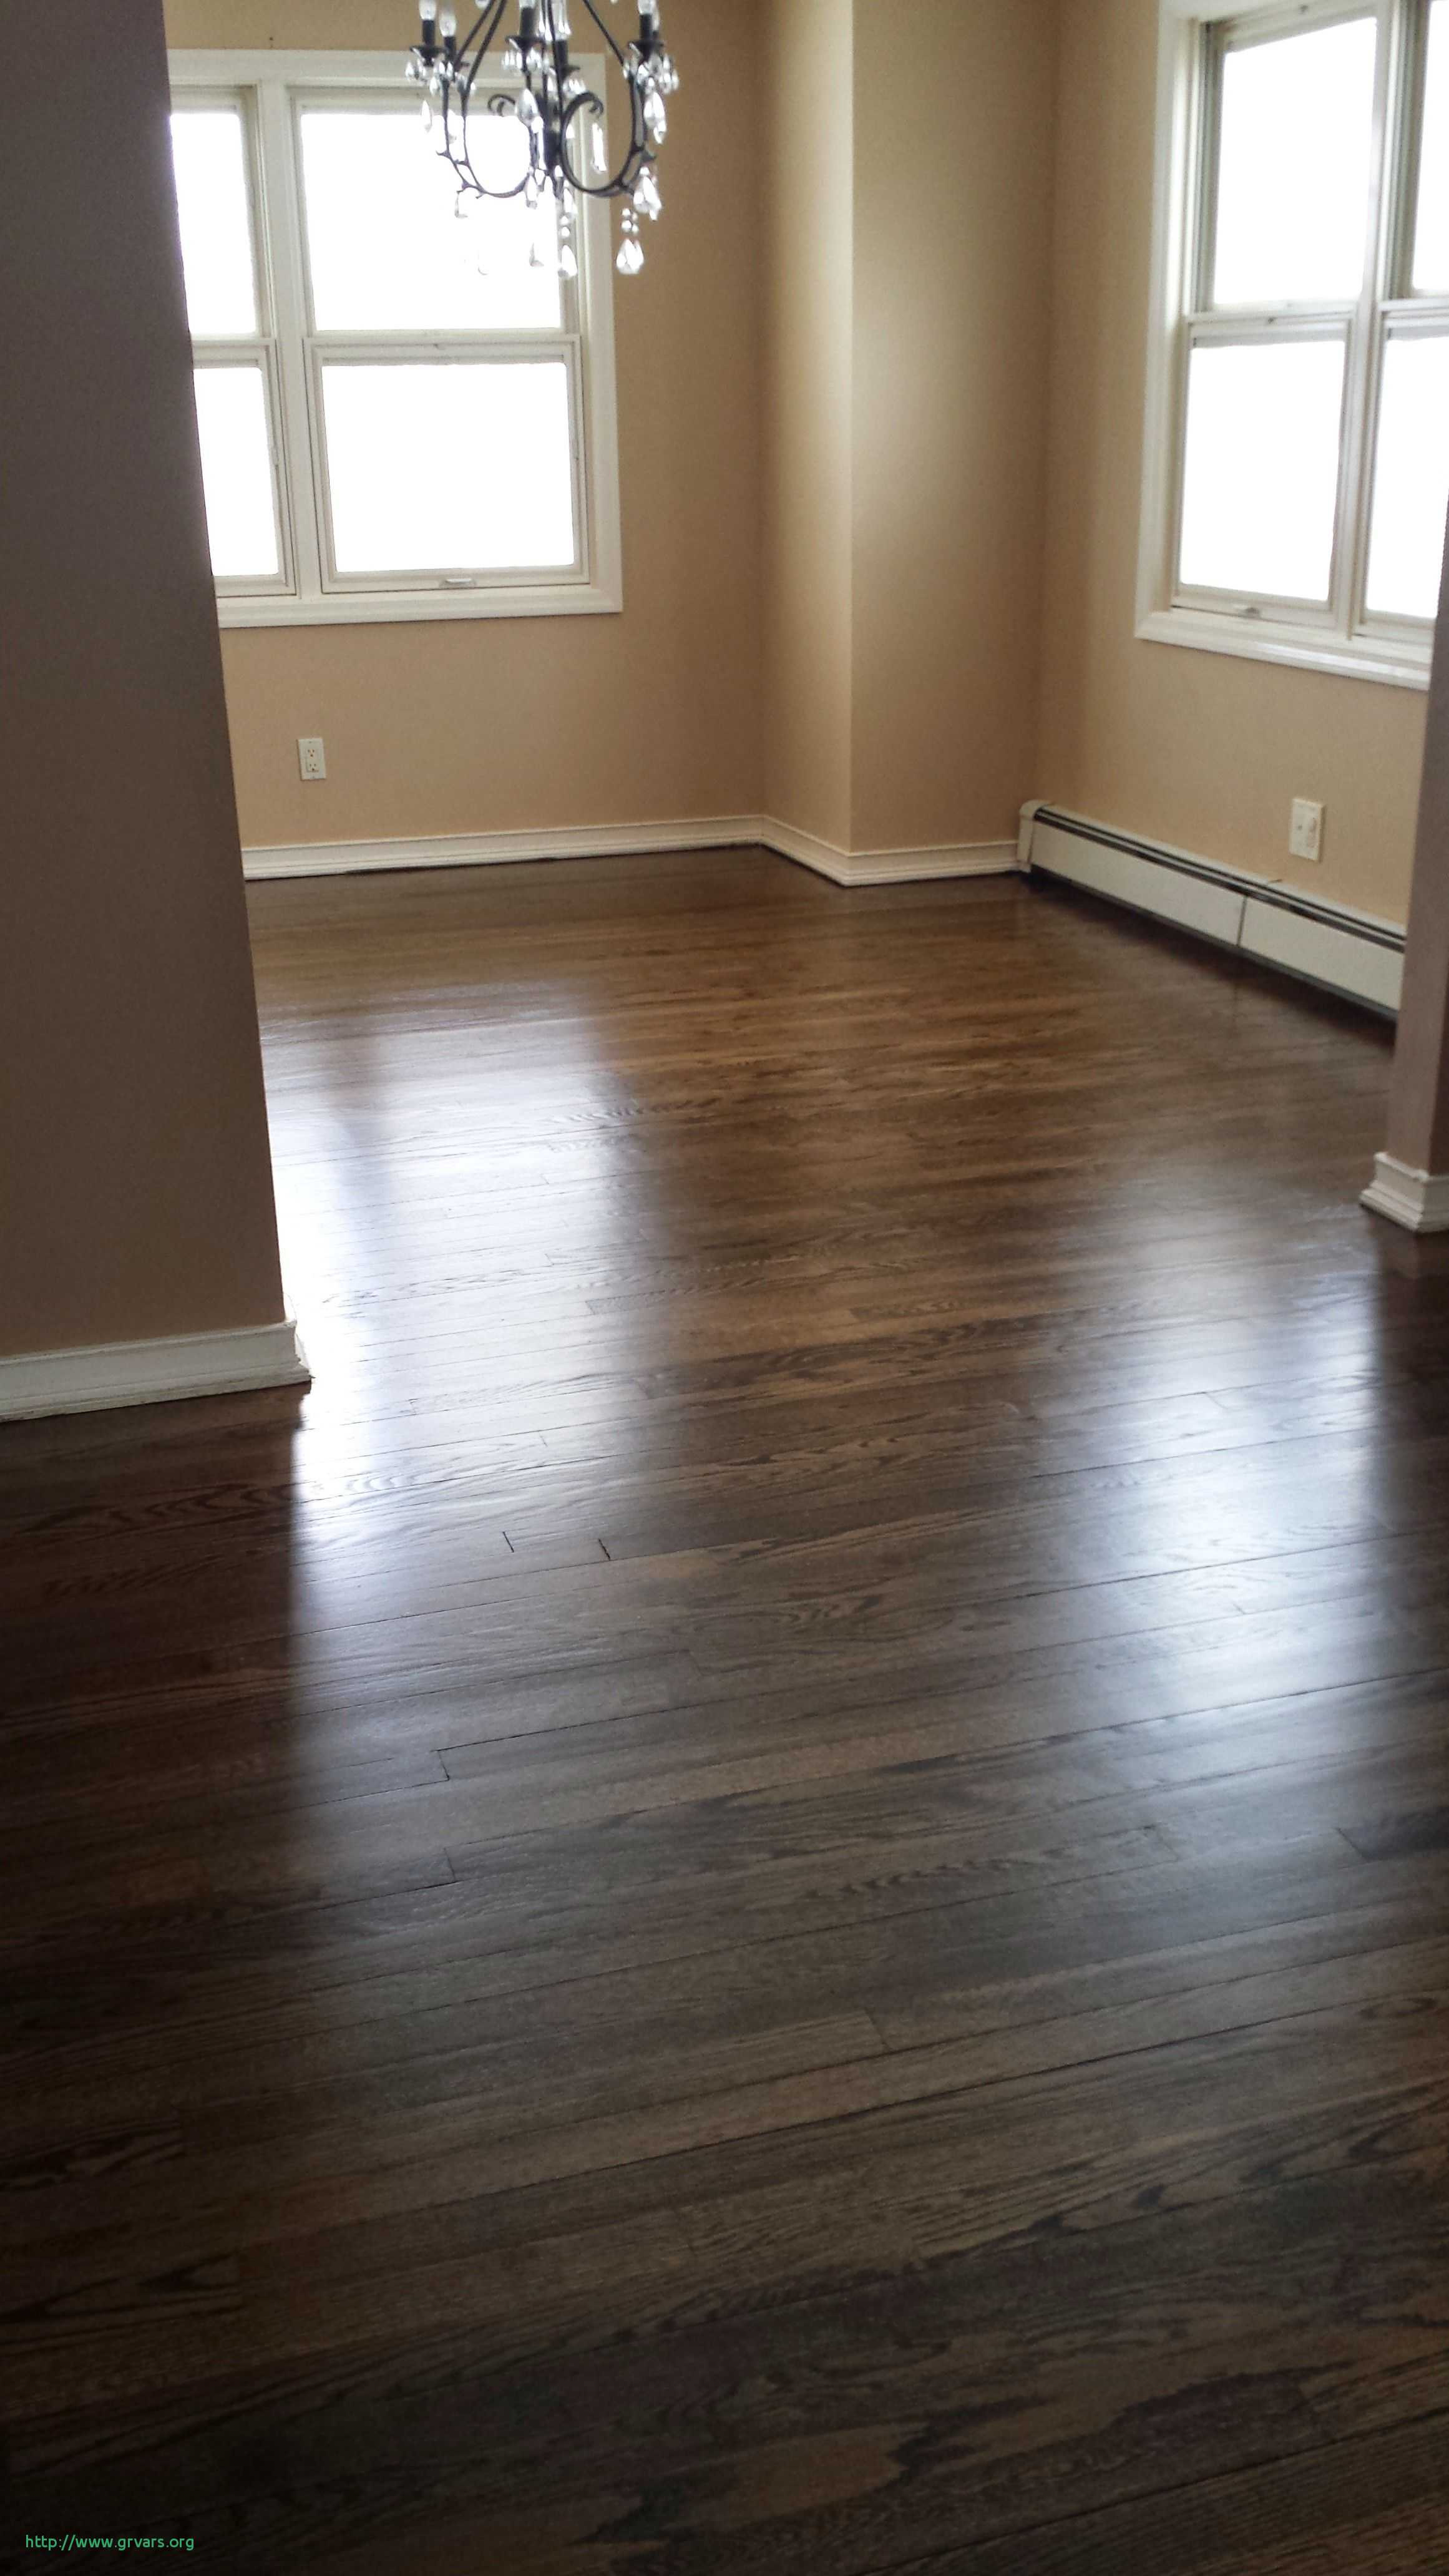 how much does hardwood flooring cost per square foot installed of cost of wooden flooring per sq ft meilleur de hardwood floor for cost of wooden flooring per sq ft nouveau amusing refinishingod floors diy network refinish parquet without